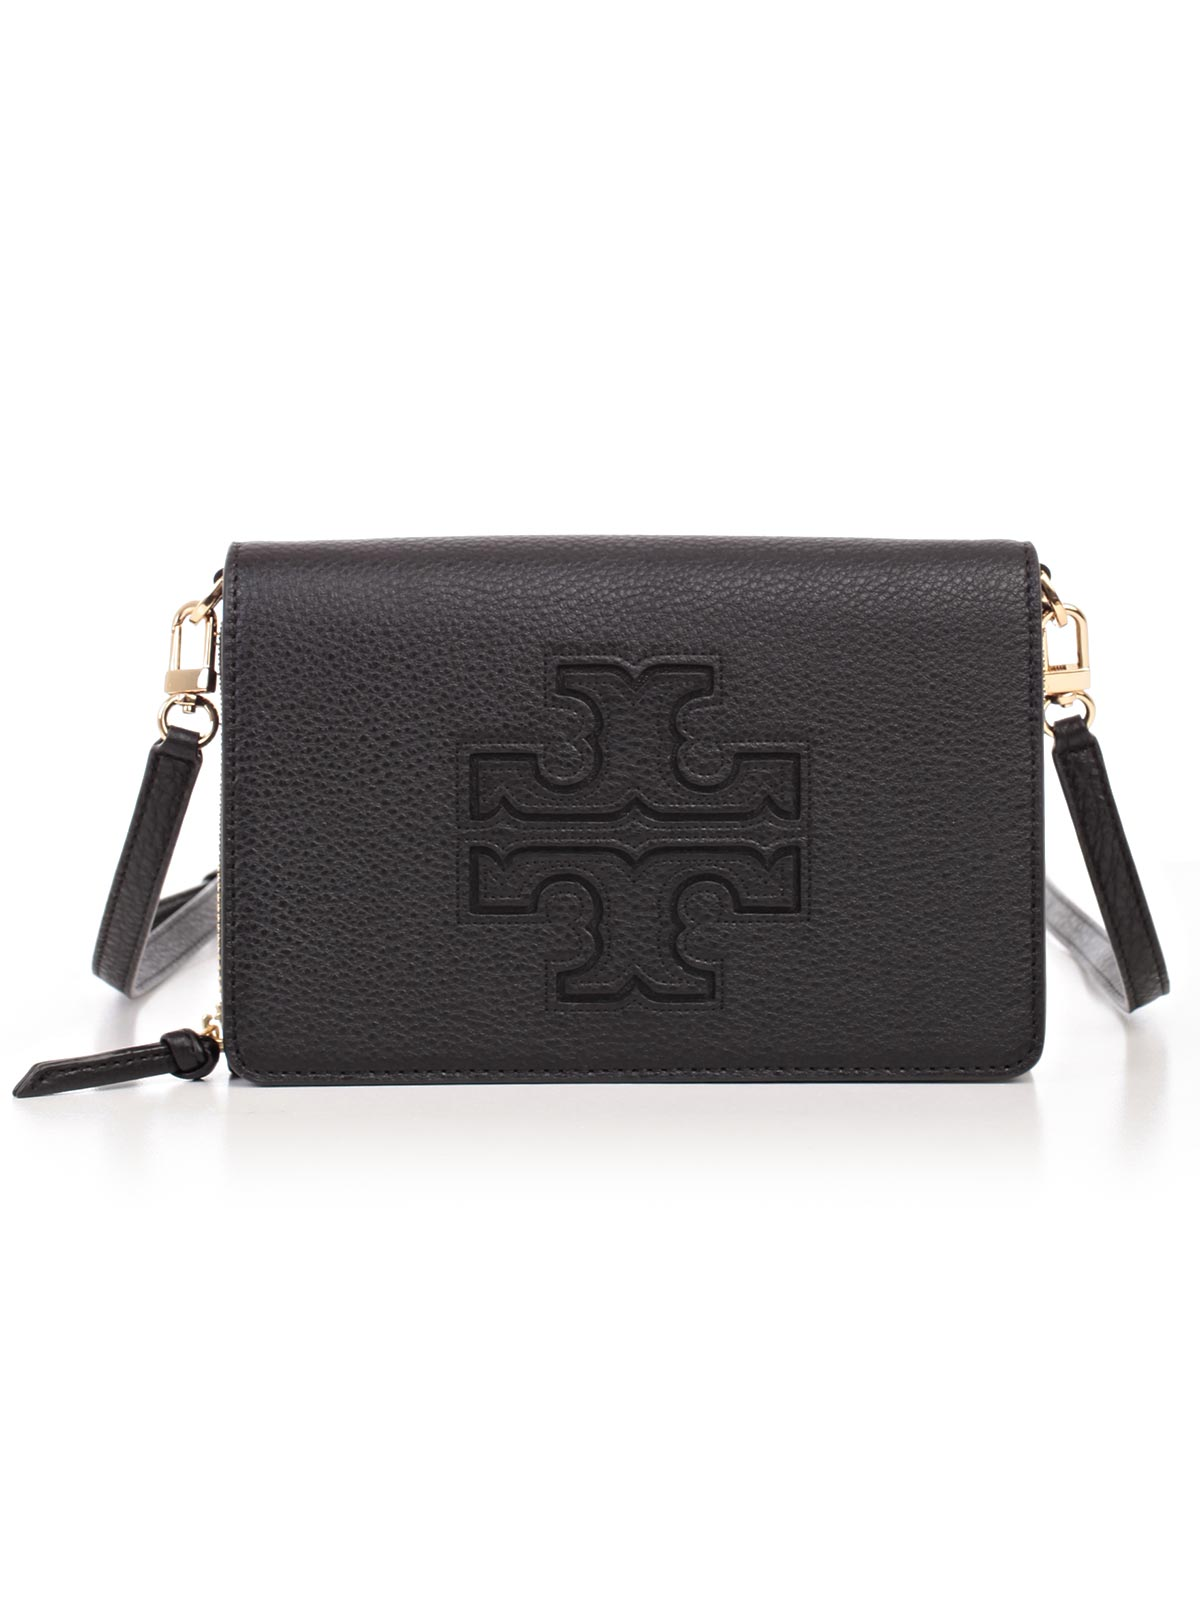 Picture of TORY BURCH WALLET